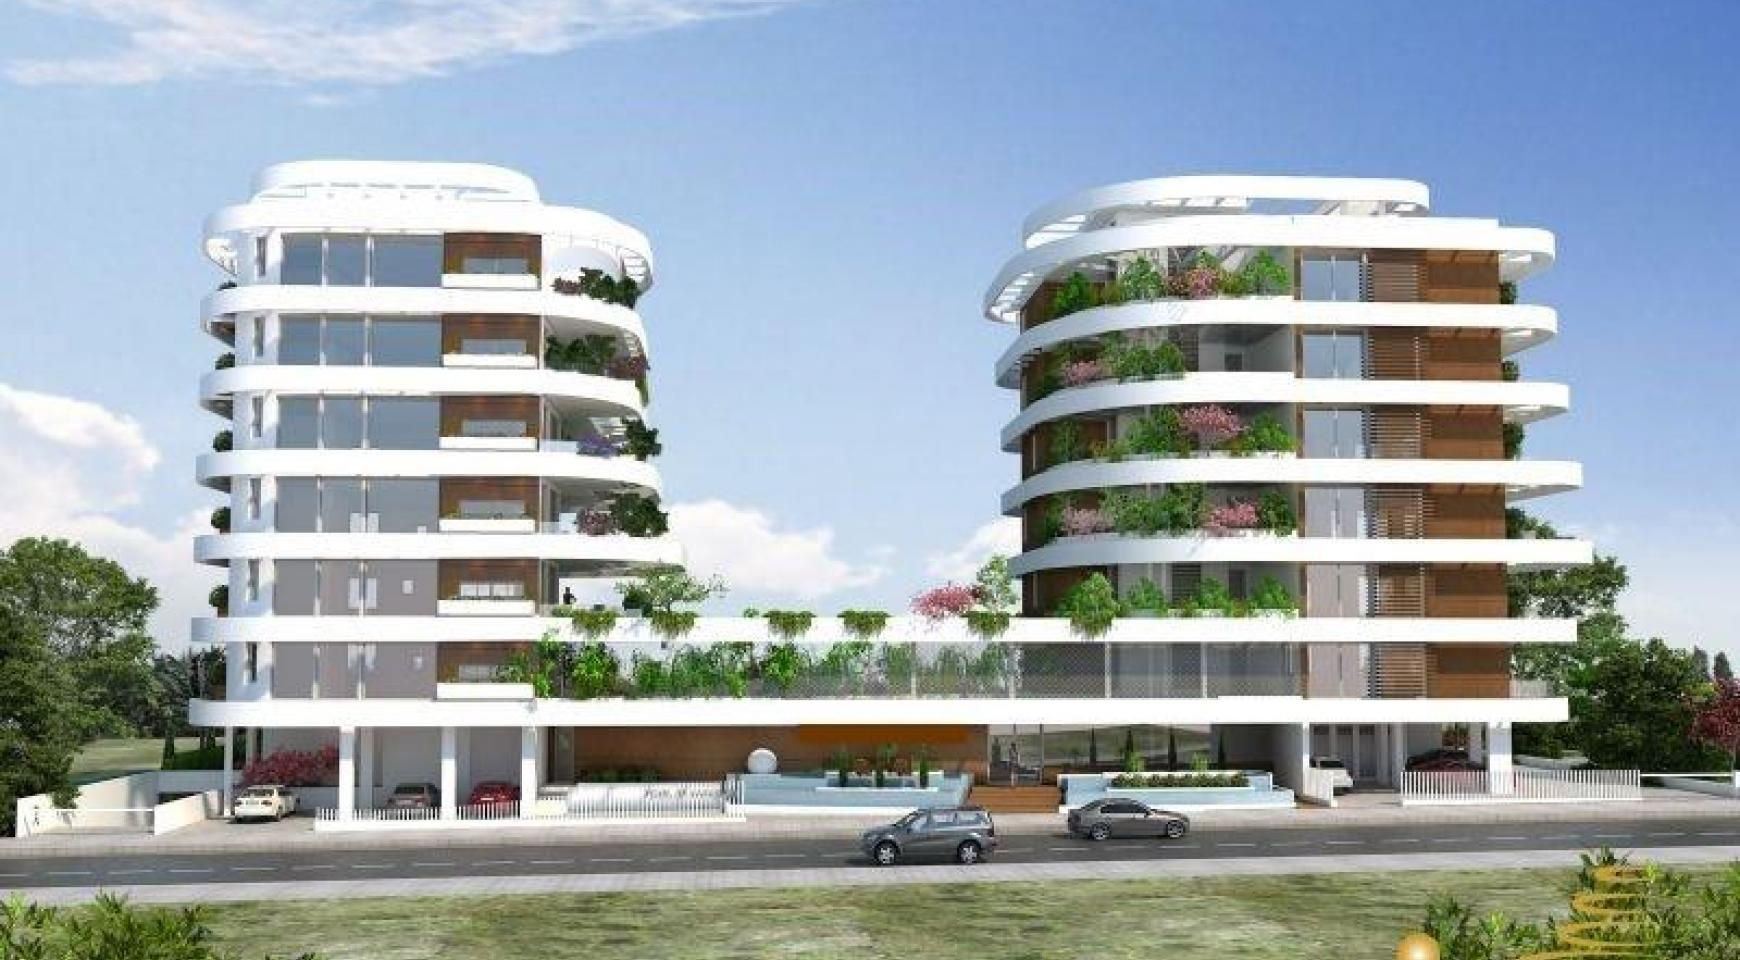 New 2 Bedroom Apartment near the Sea - 2